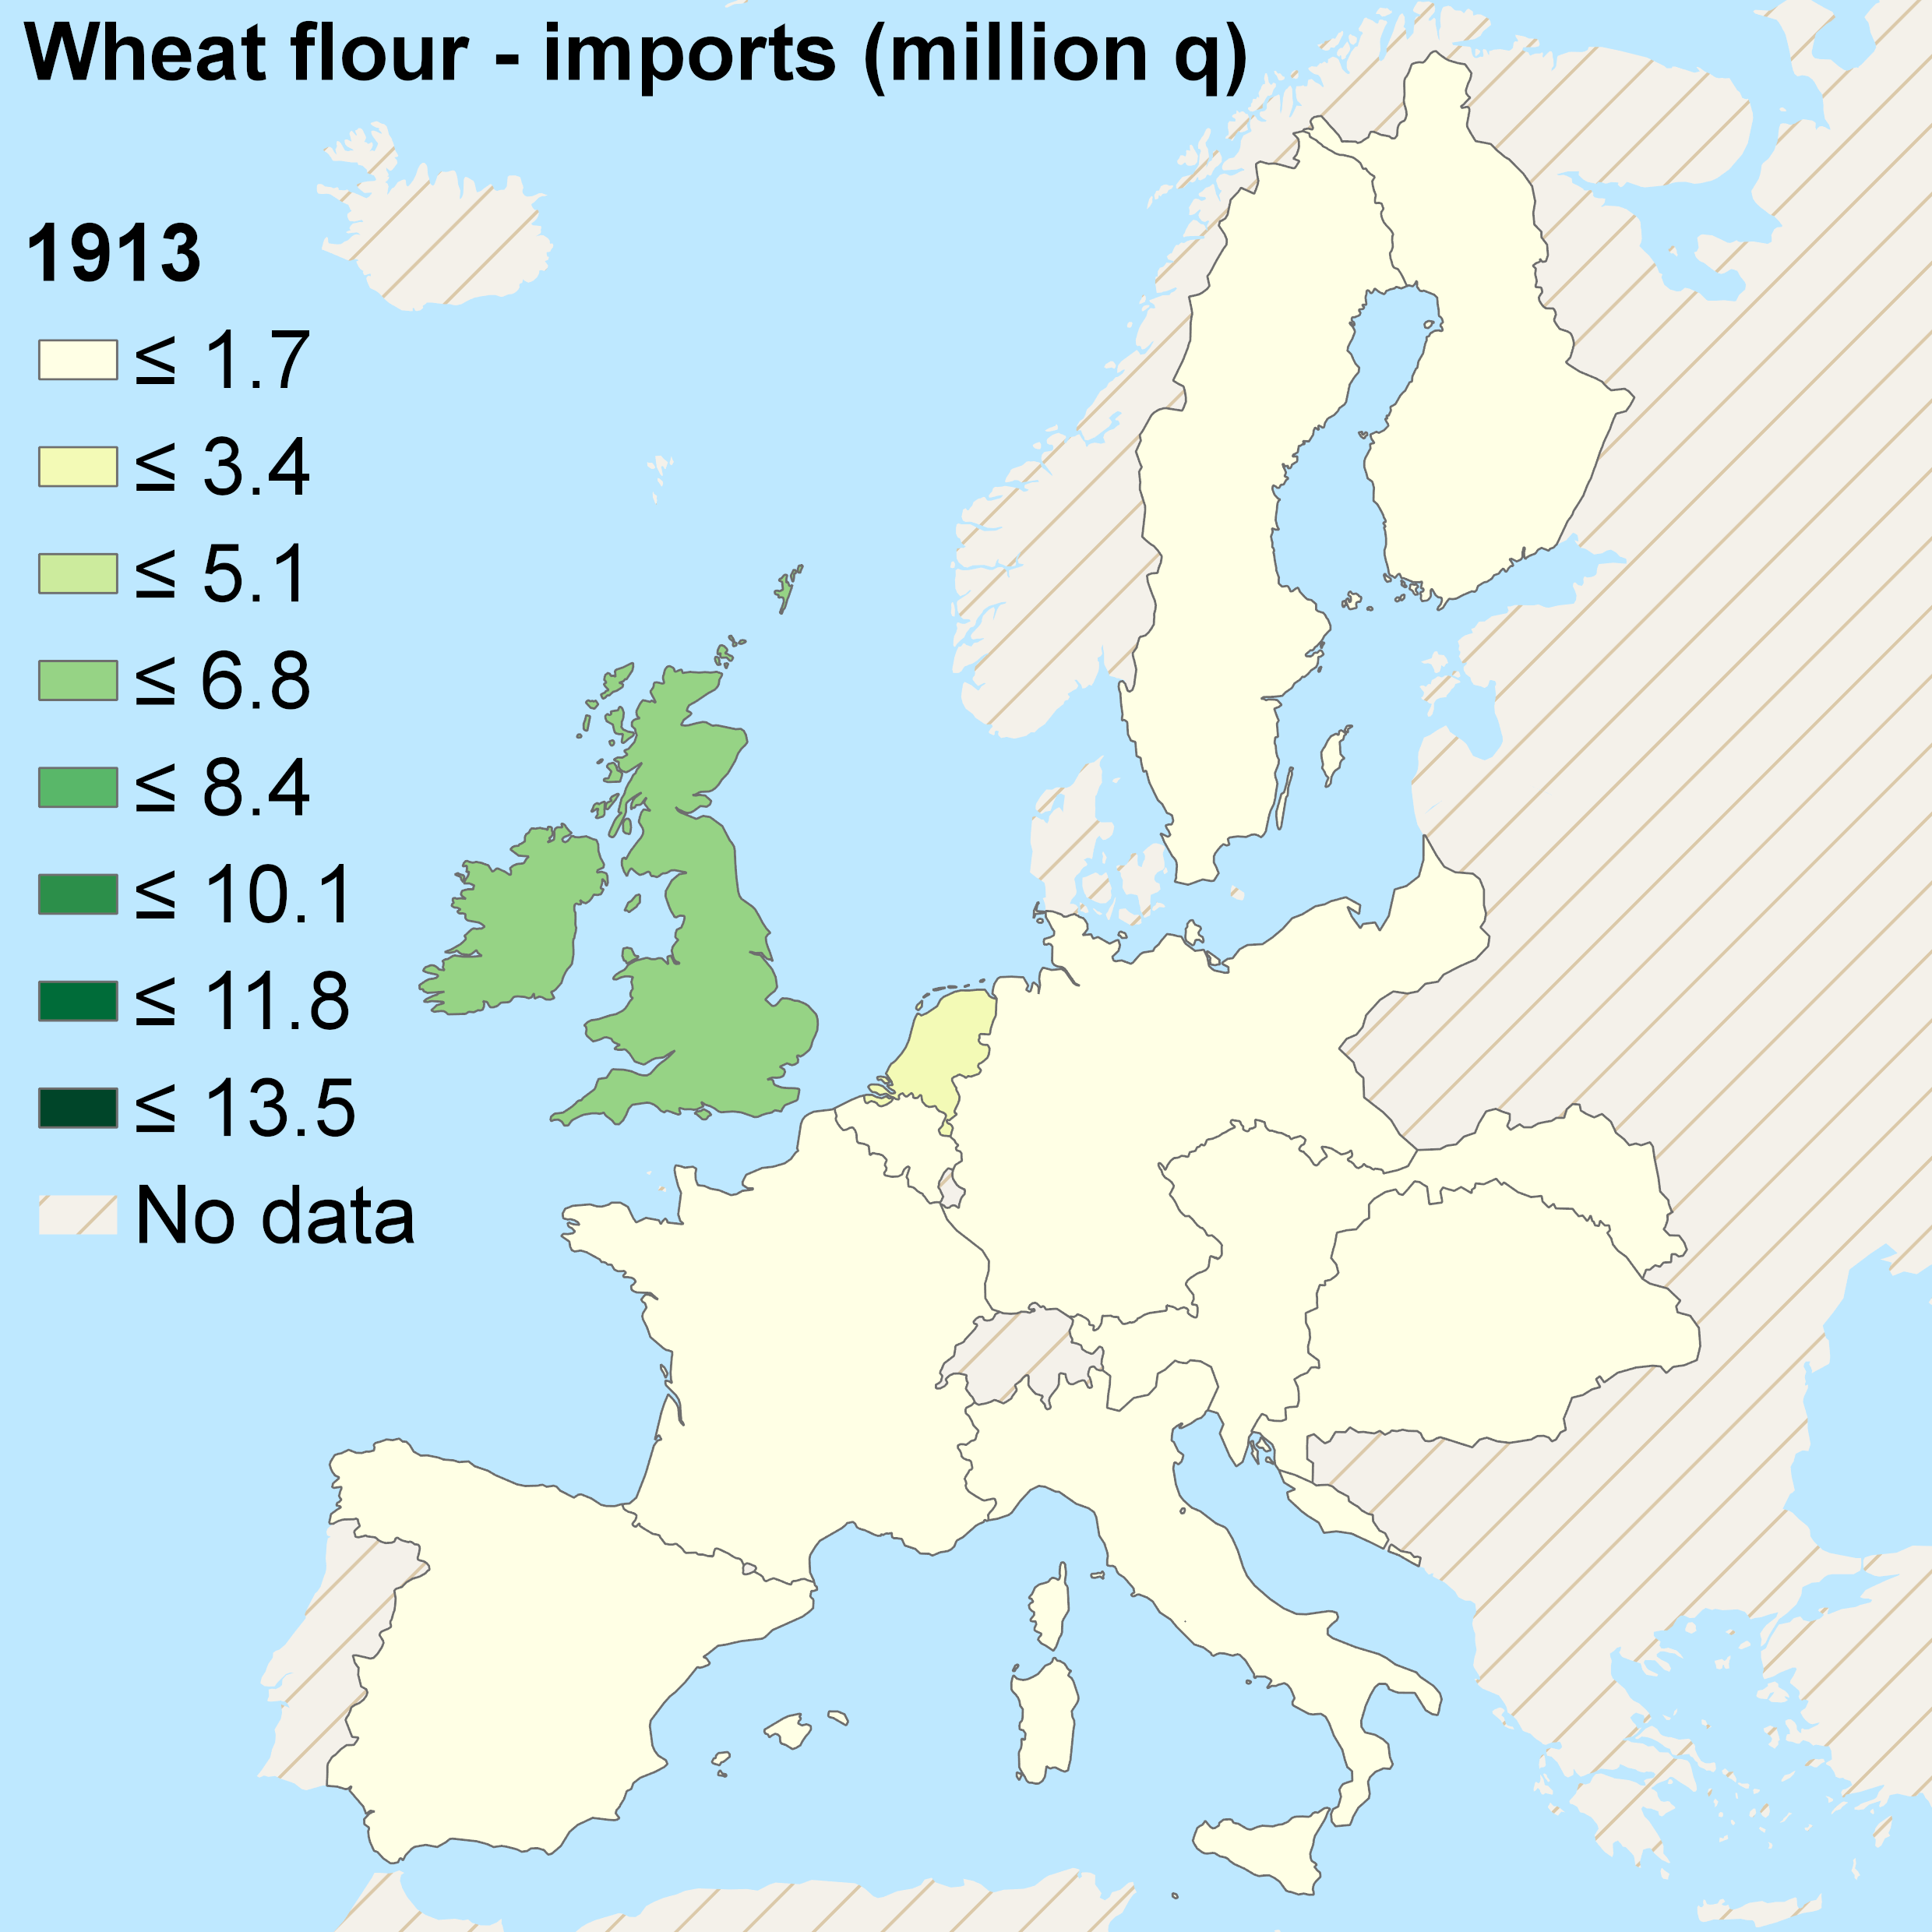 wheat-flour-imports-1913-v2